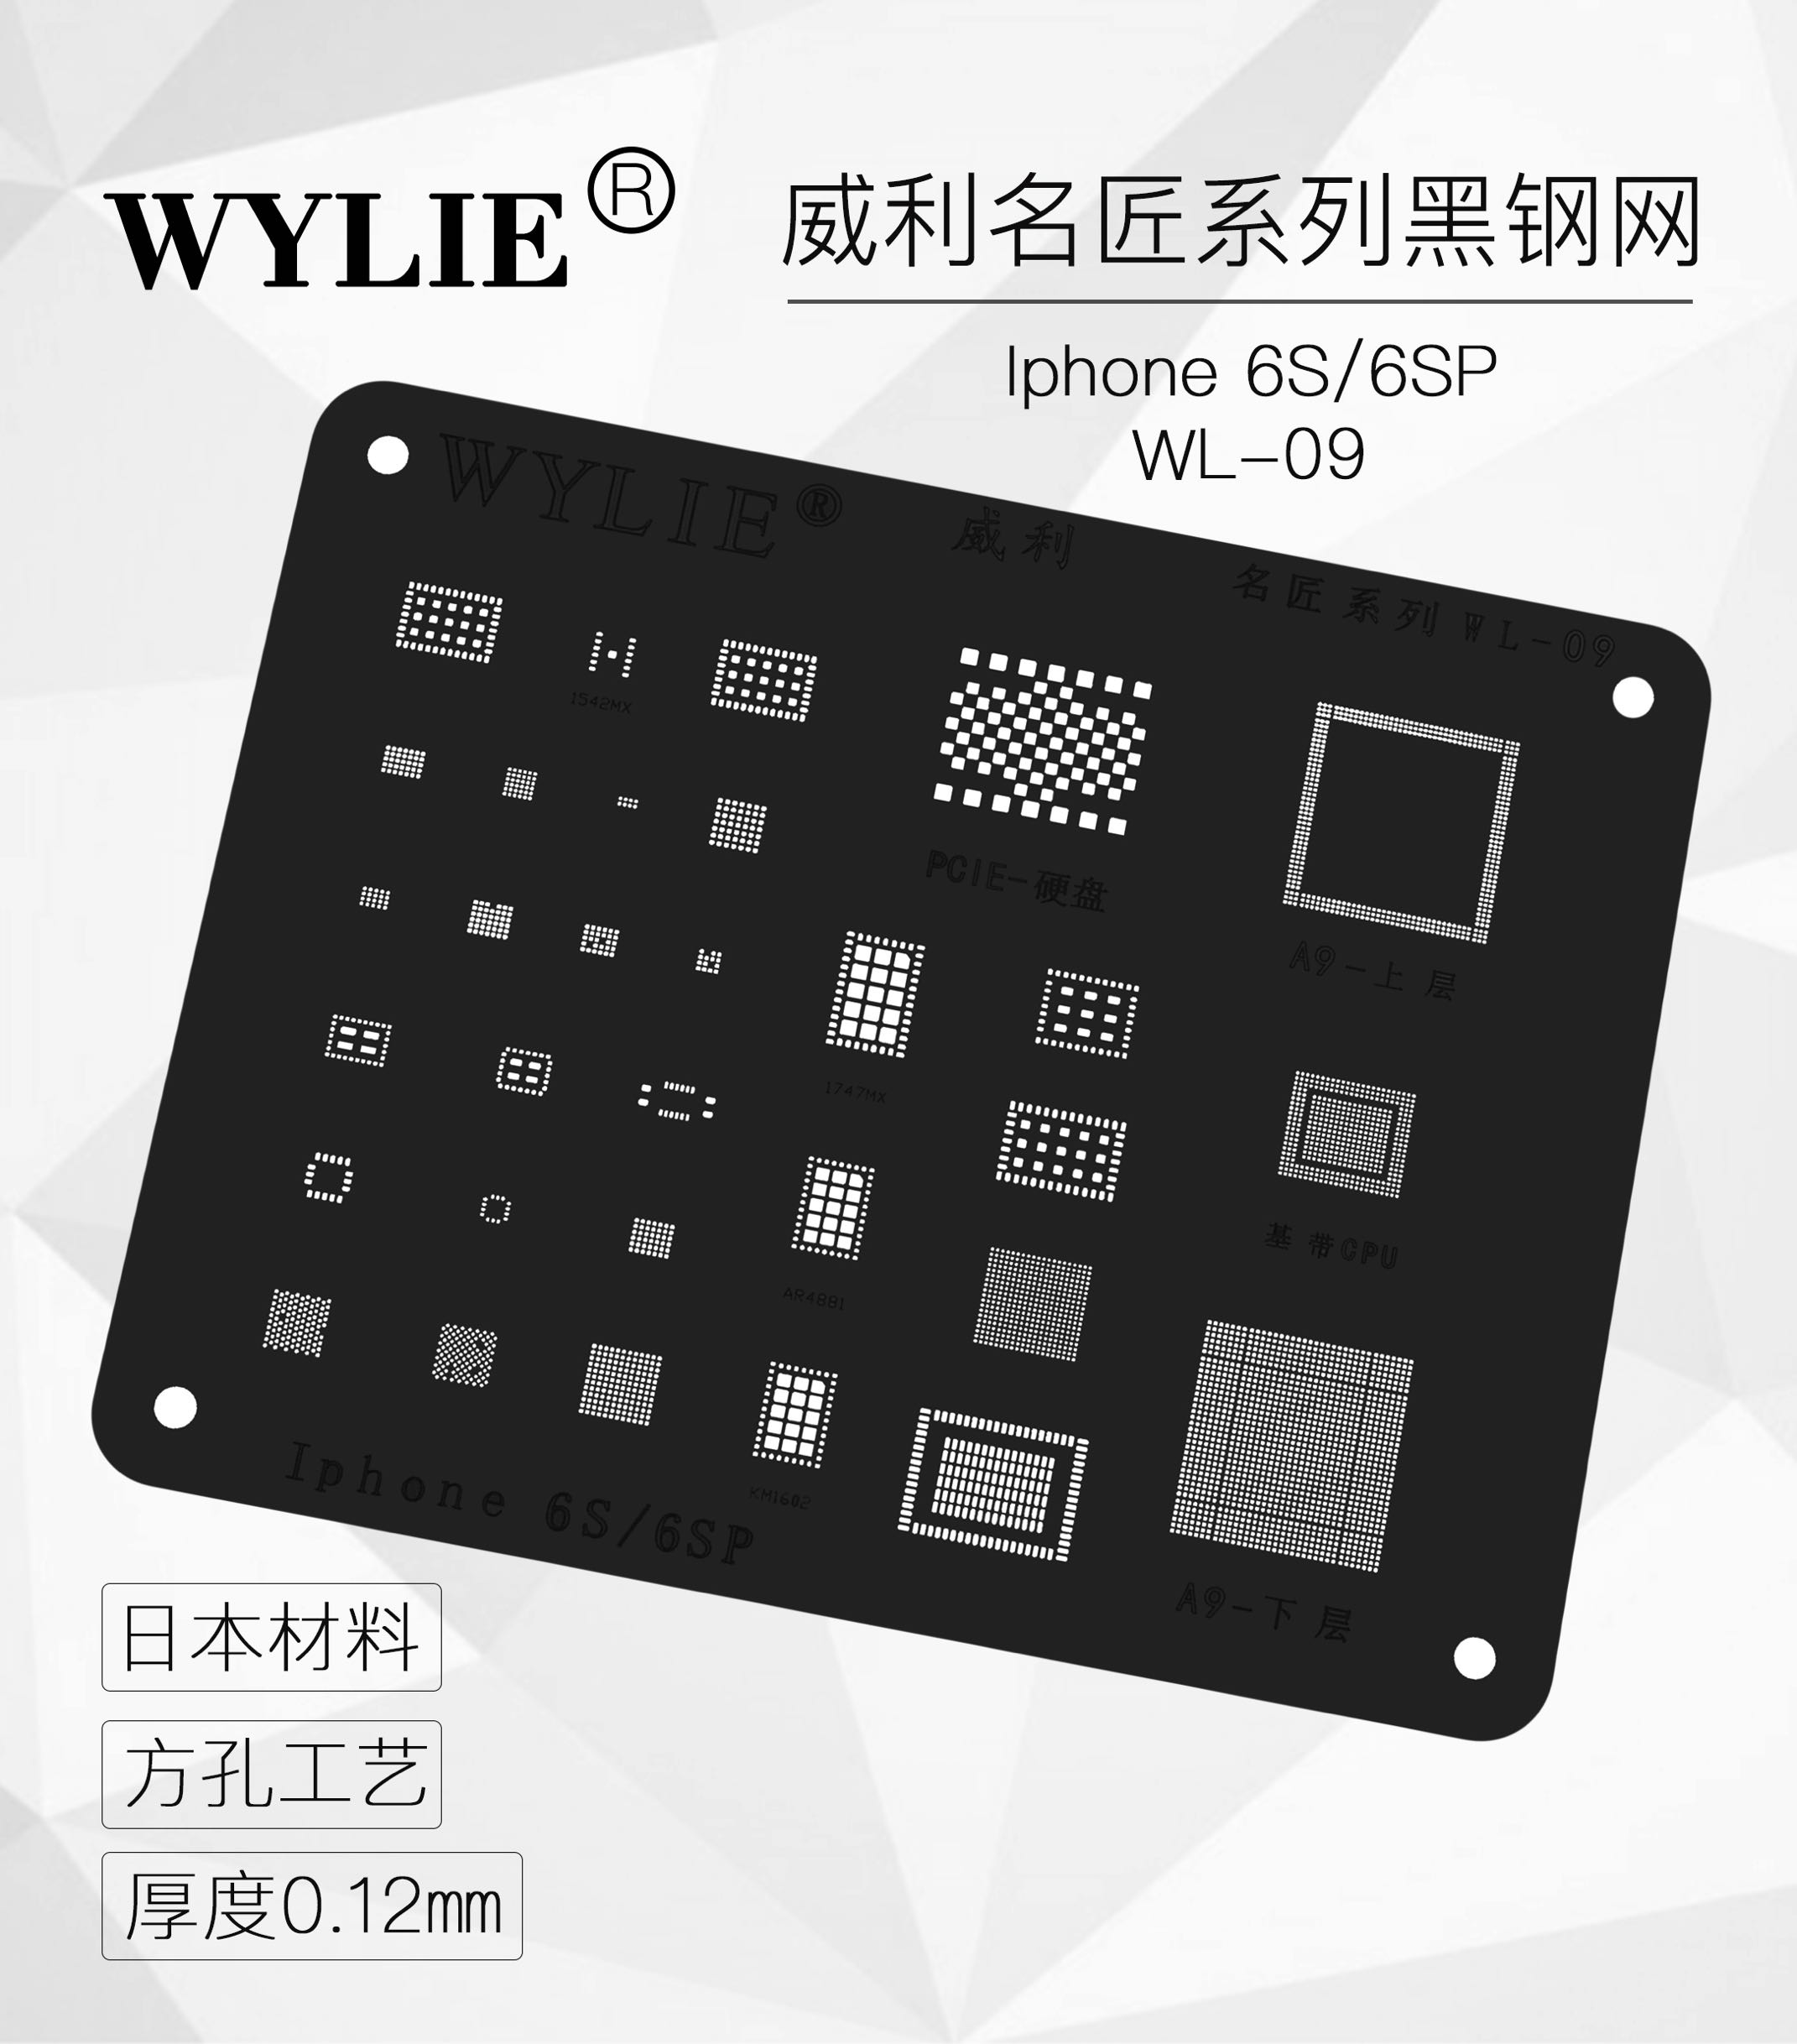 Wylie BGA Reballing Stencil for iphone 5 5s 6 6plus 6s 6splus 7 7plus 8/8 plus x xs max XR A13 A12 A11 A10 A9 A8 A7 CPU RAM chip 2